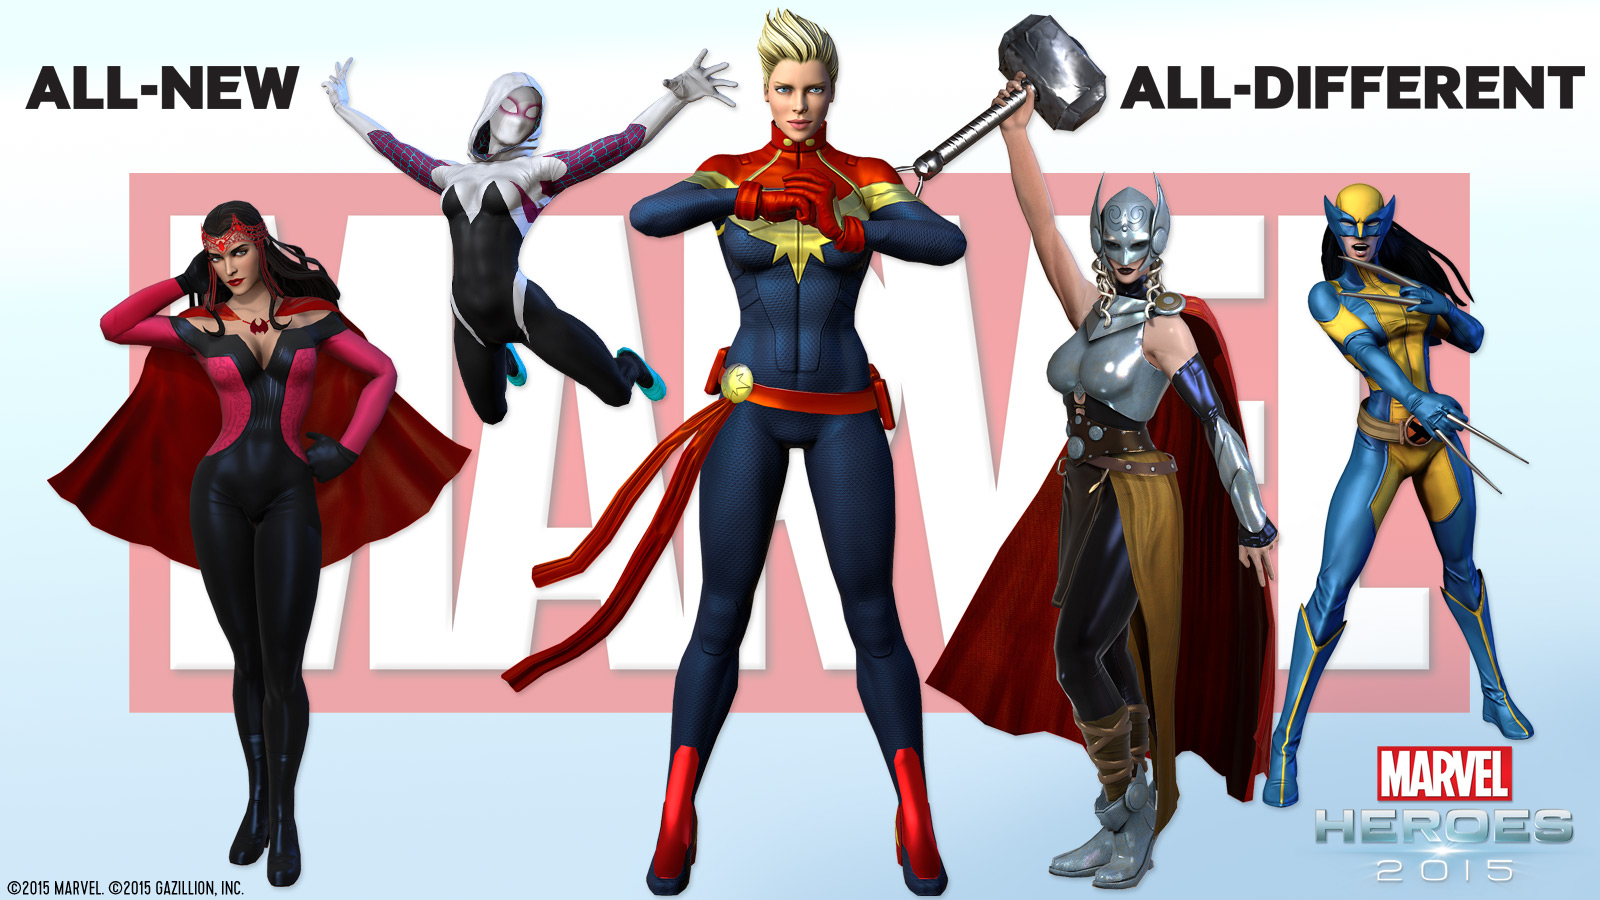 http://images.mmorpg.com/images/newsImages/412015/MarvelHeroes2015-AllNew-AllDifferent.jpg